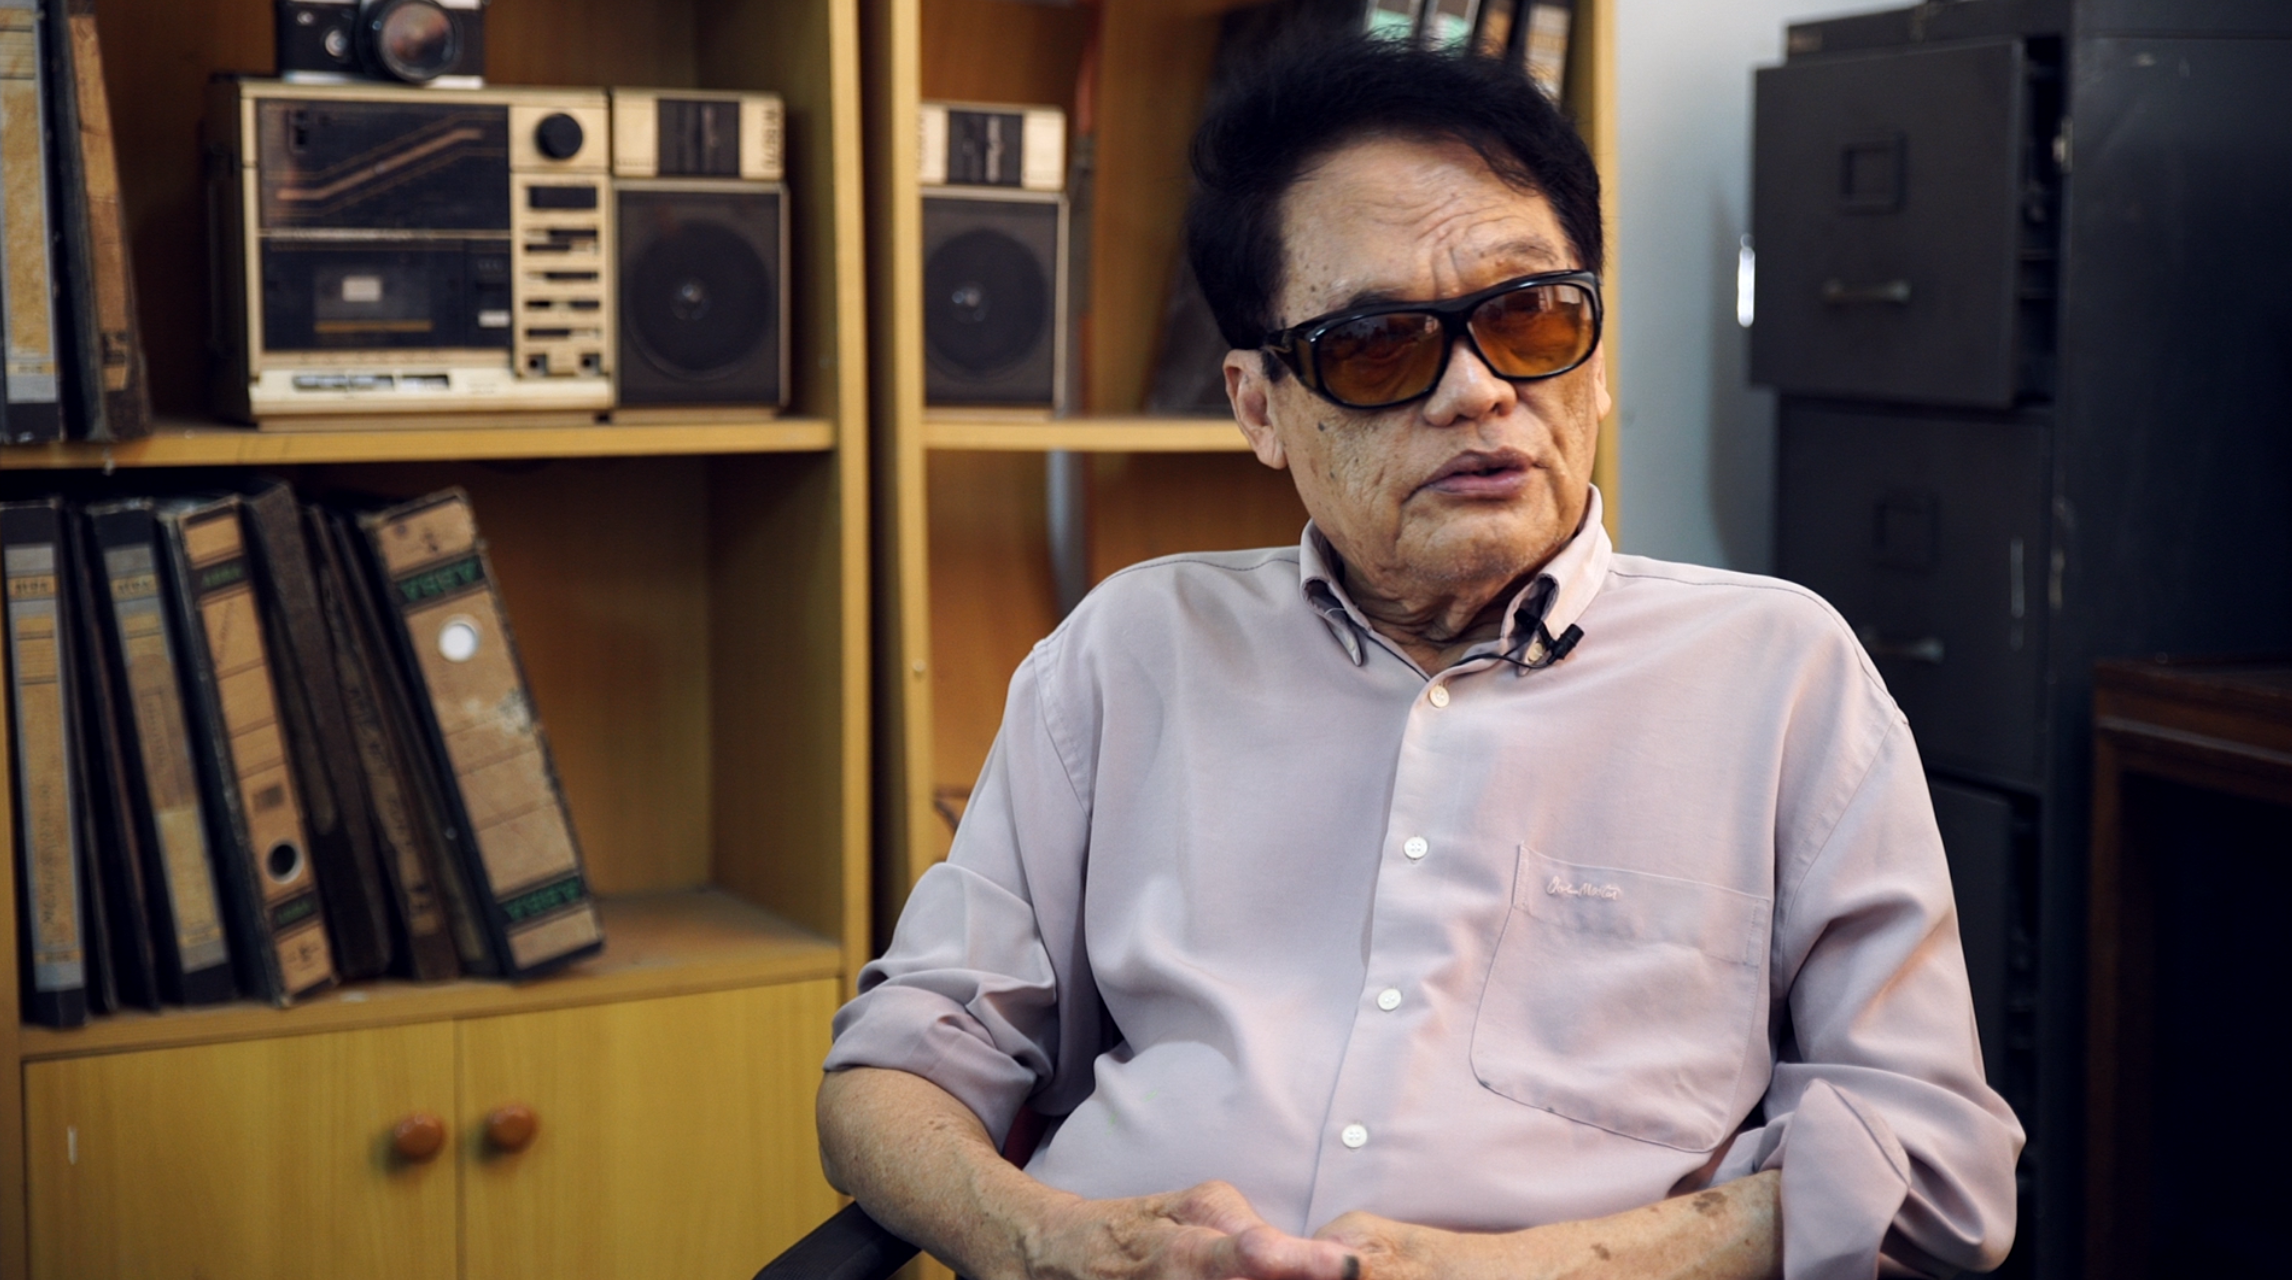 Leon Chee Kuang (photo by Lian Ling Siong)